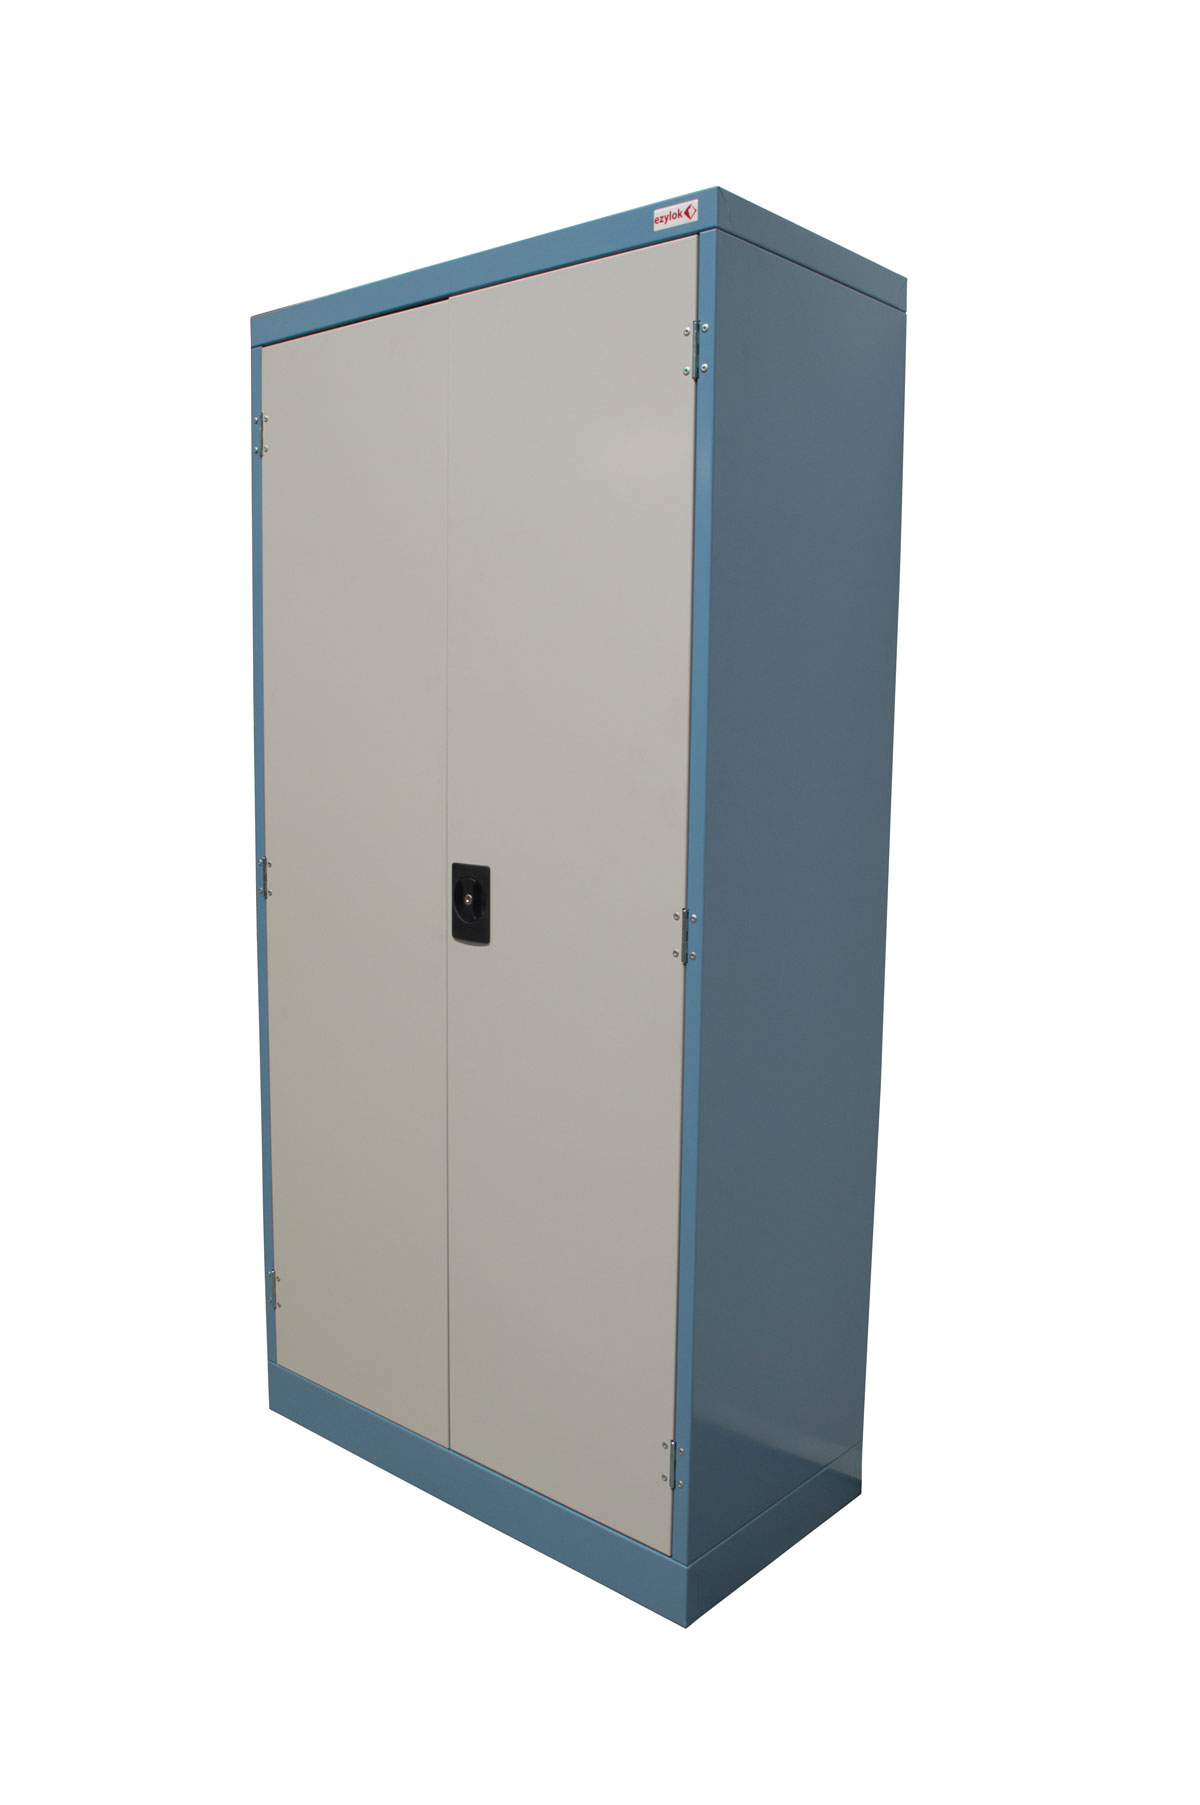 All-models-Flat-Top-Factory-Cupboard-door-closed-angle-right.jpg